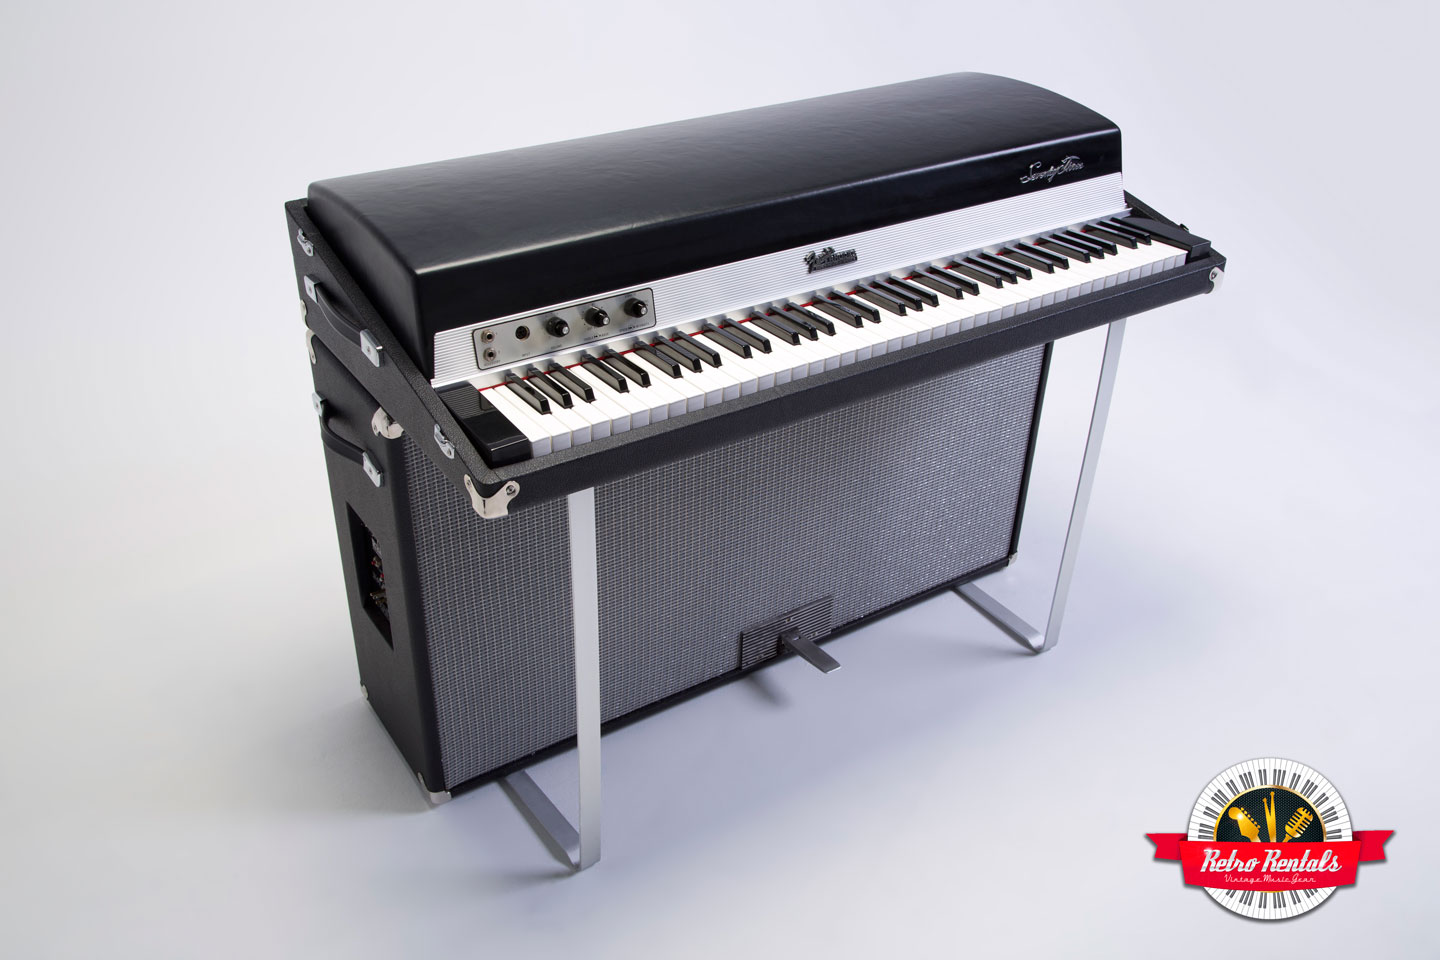 1971 fender rhodes suitcase 73 key retro rentals. Black Bedroom Furniture Sets. Home Design Ideas